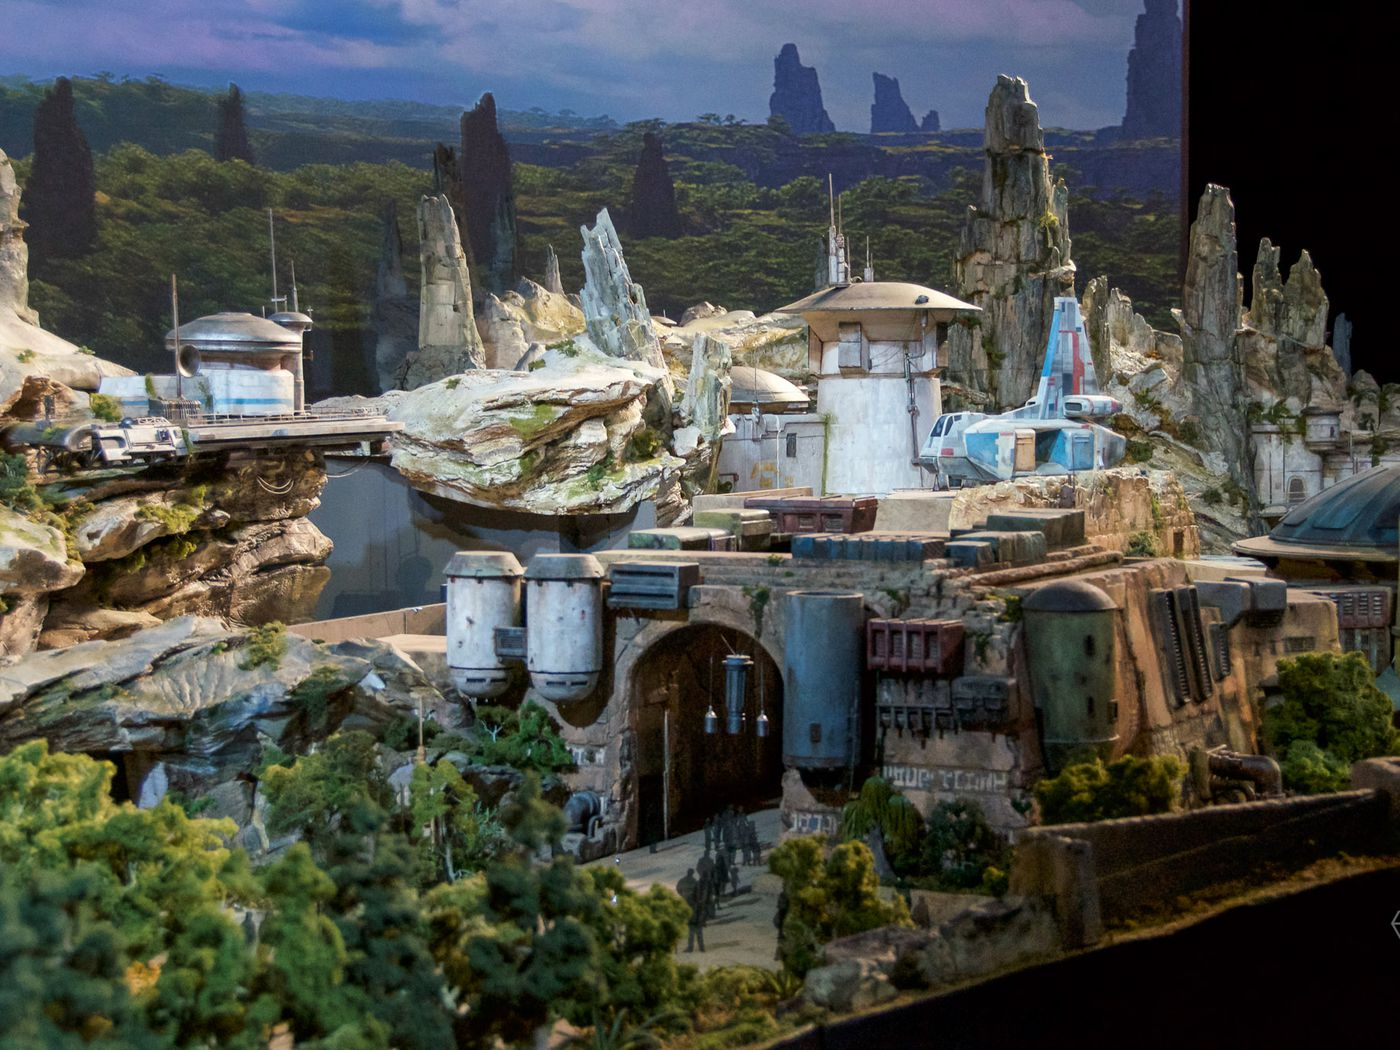 Disney S Star Wars Themed Land Will Be Called Star Wars Galaxy S Edge The Verge